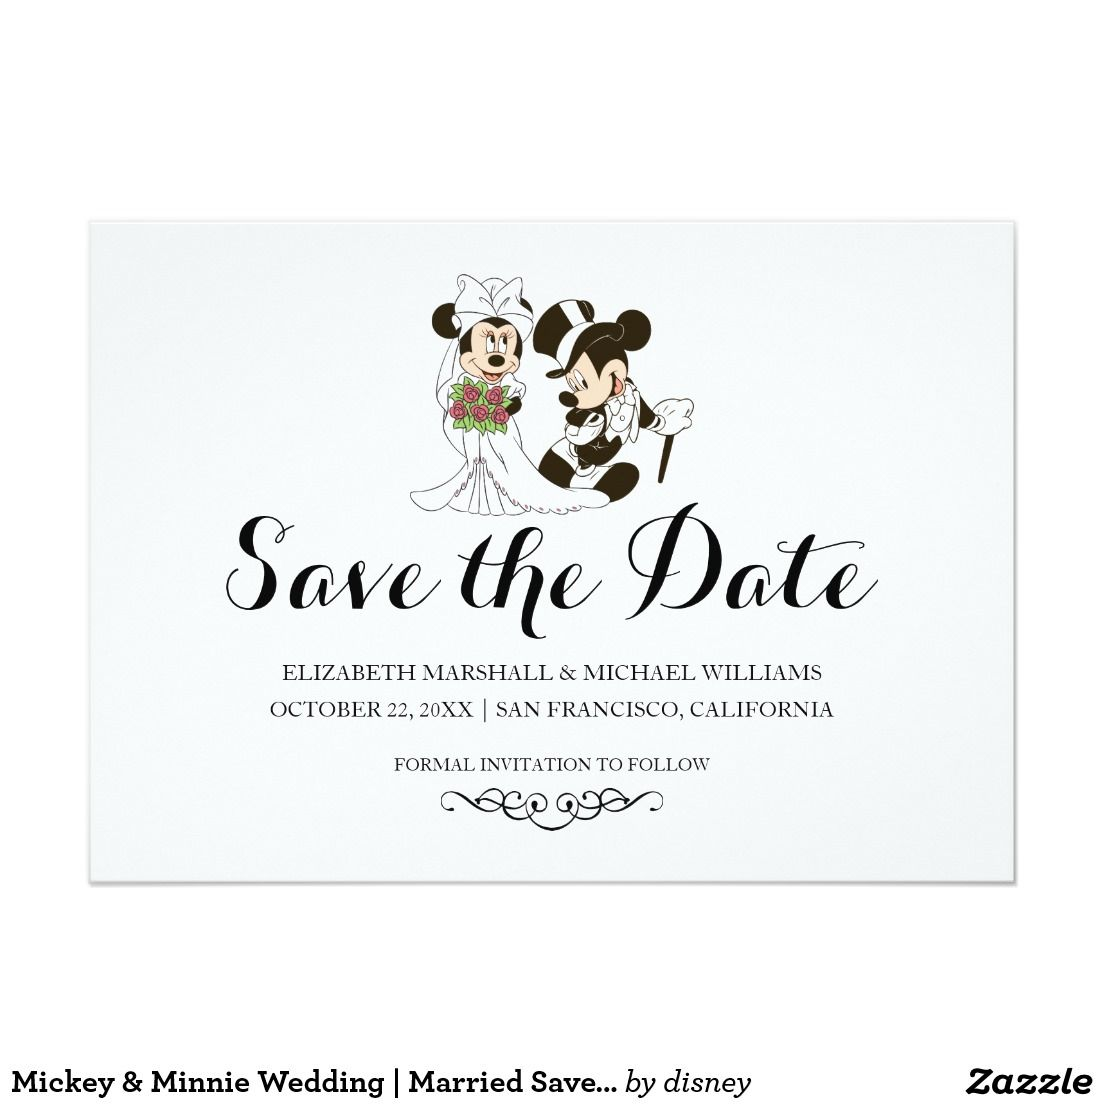 Mickey Minnie Wedding Married Save The Date Save The Date